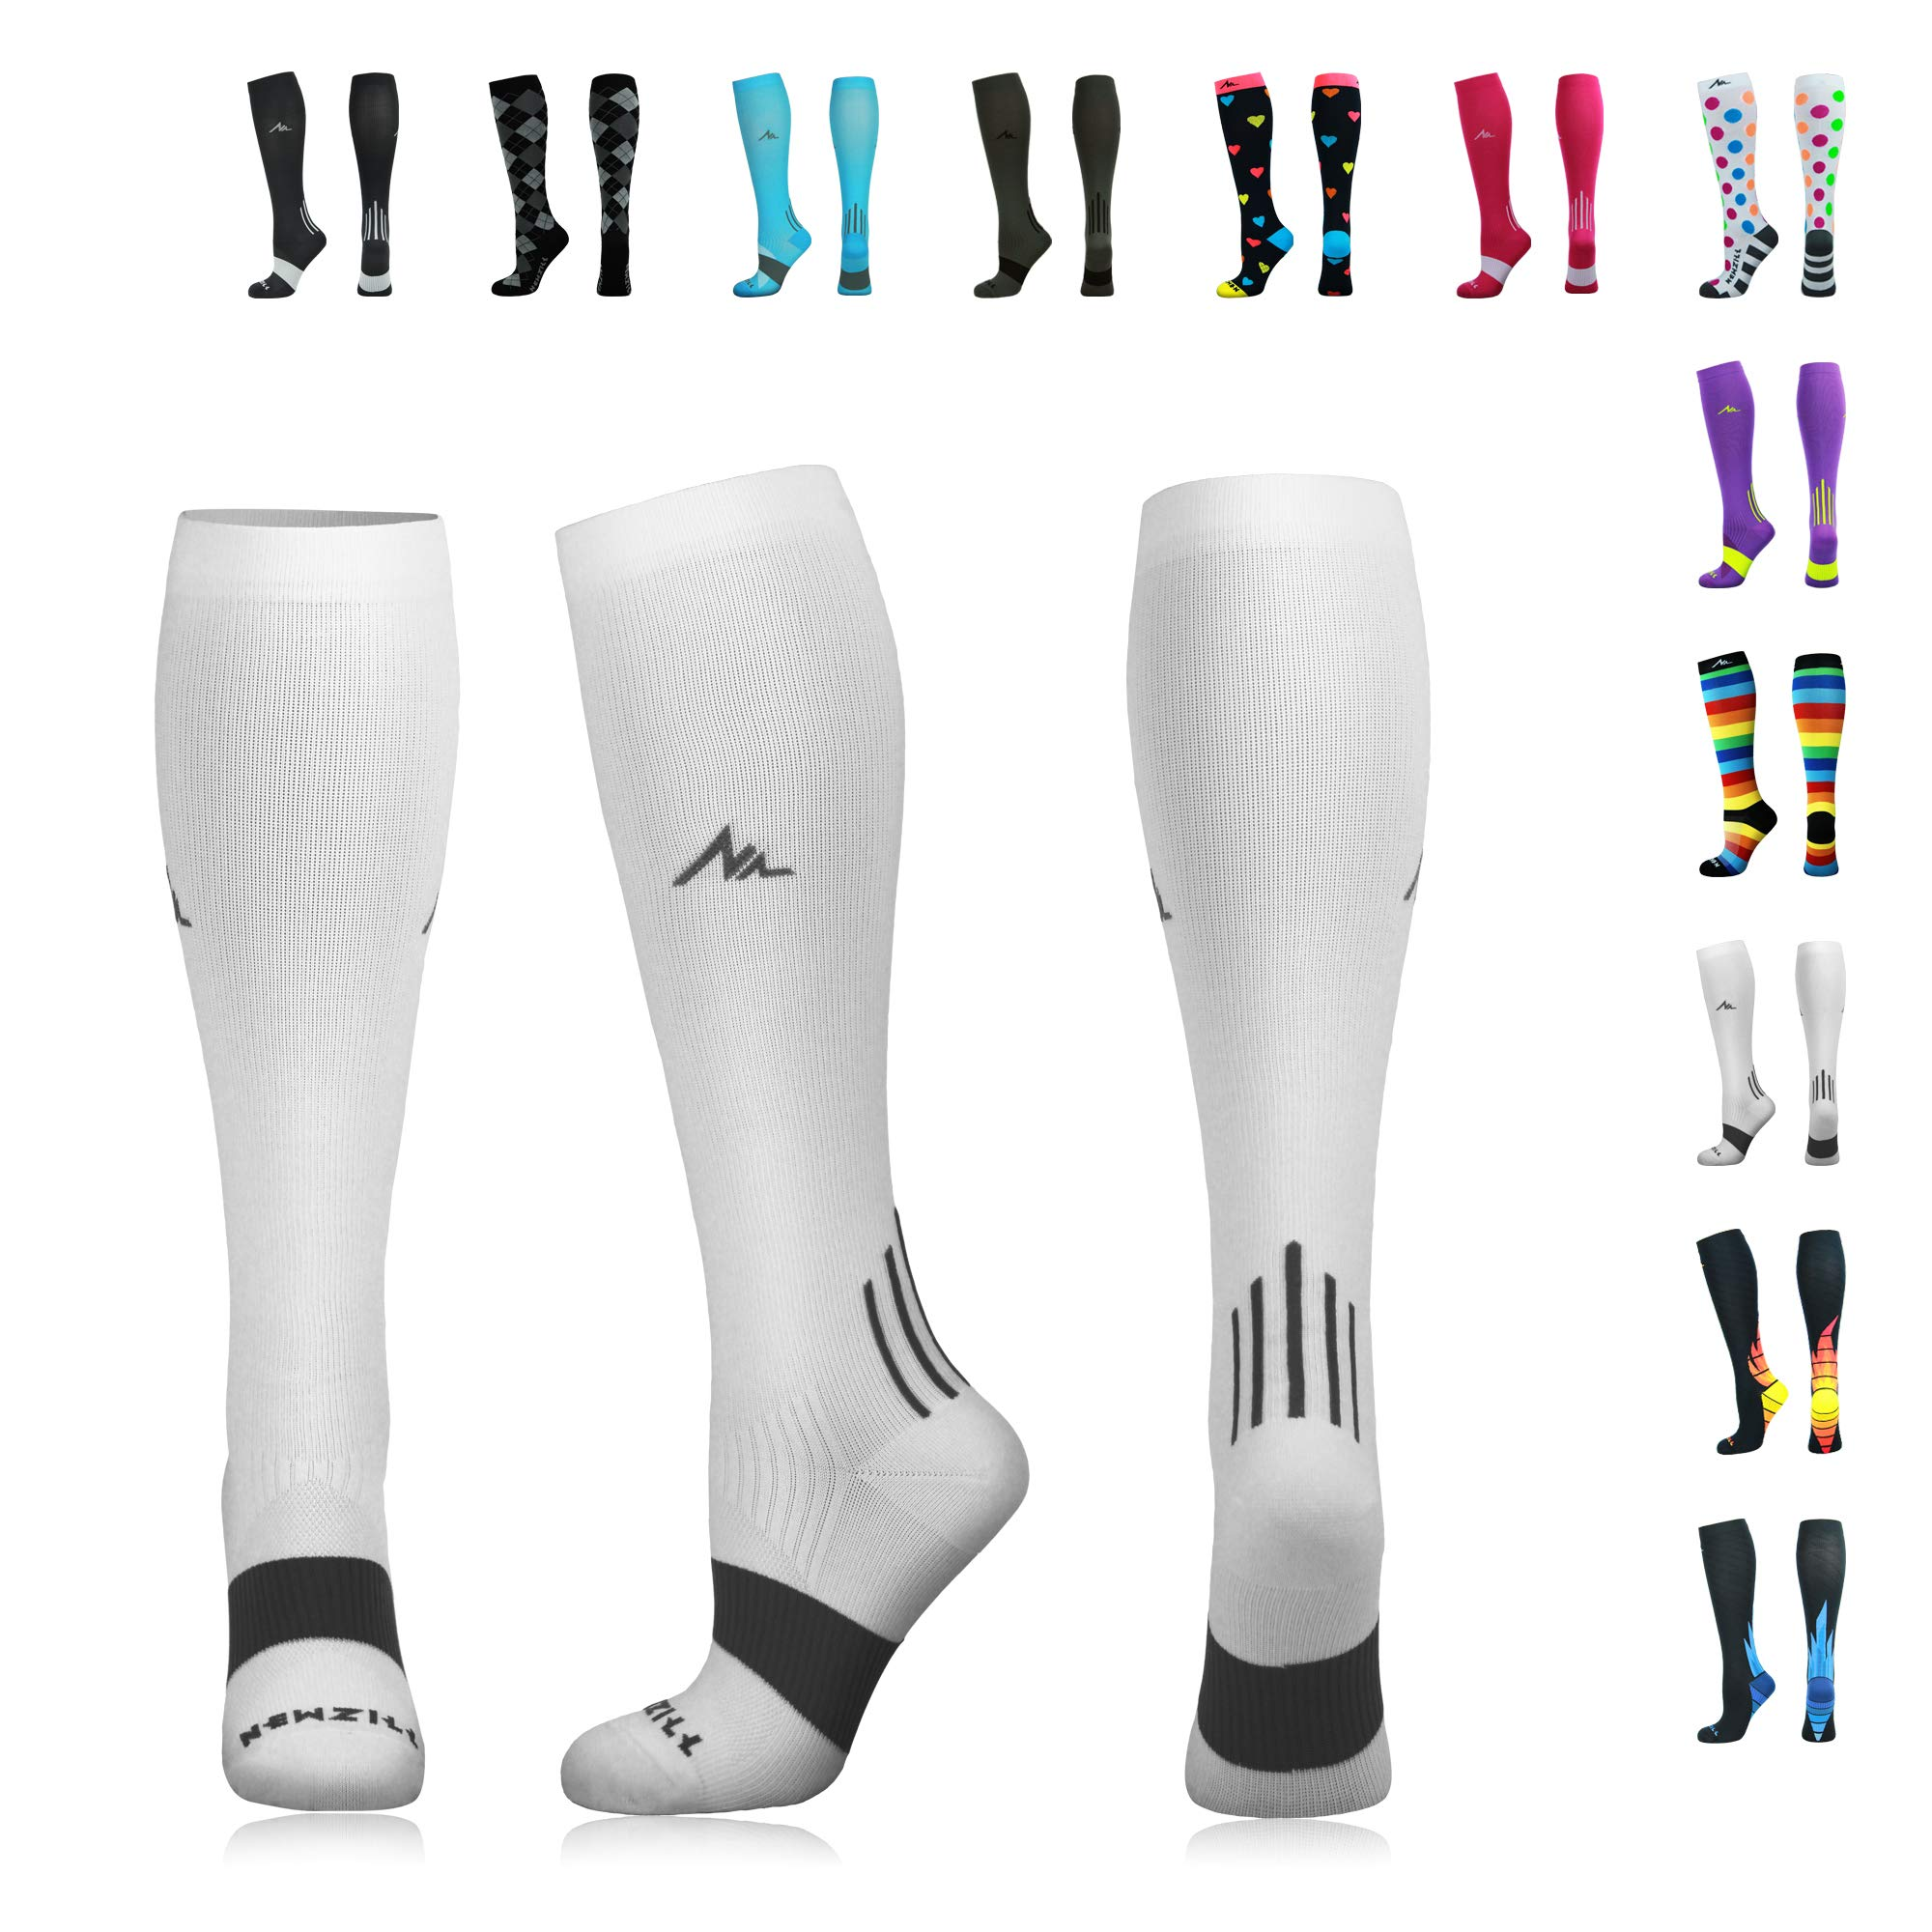 NEWZILL Compression Socks (20-30mmHg) for Men & Women - Best Stockings for Running, Medical, Athletic, Edema, Diabetic, Varicose Veins, Travel, Pregnancy, Shin Splints. White - Large (1 Pair) by NEWZILL